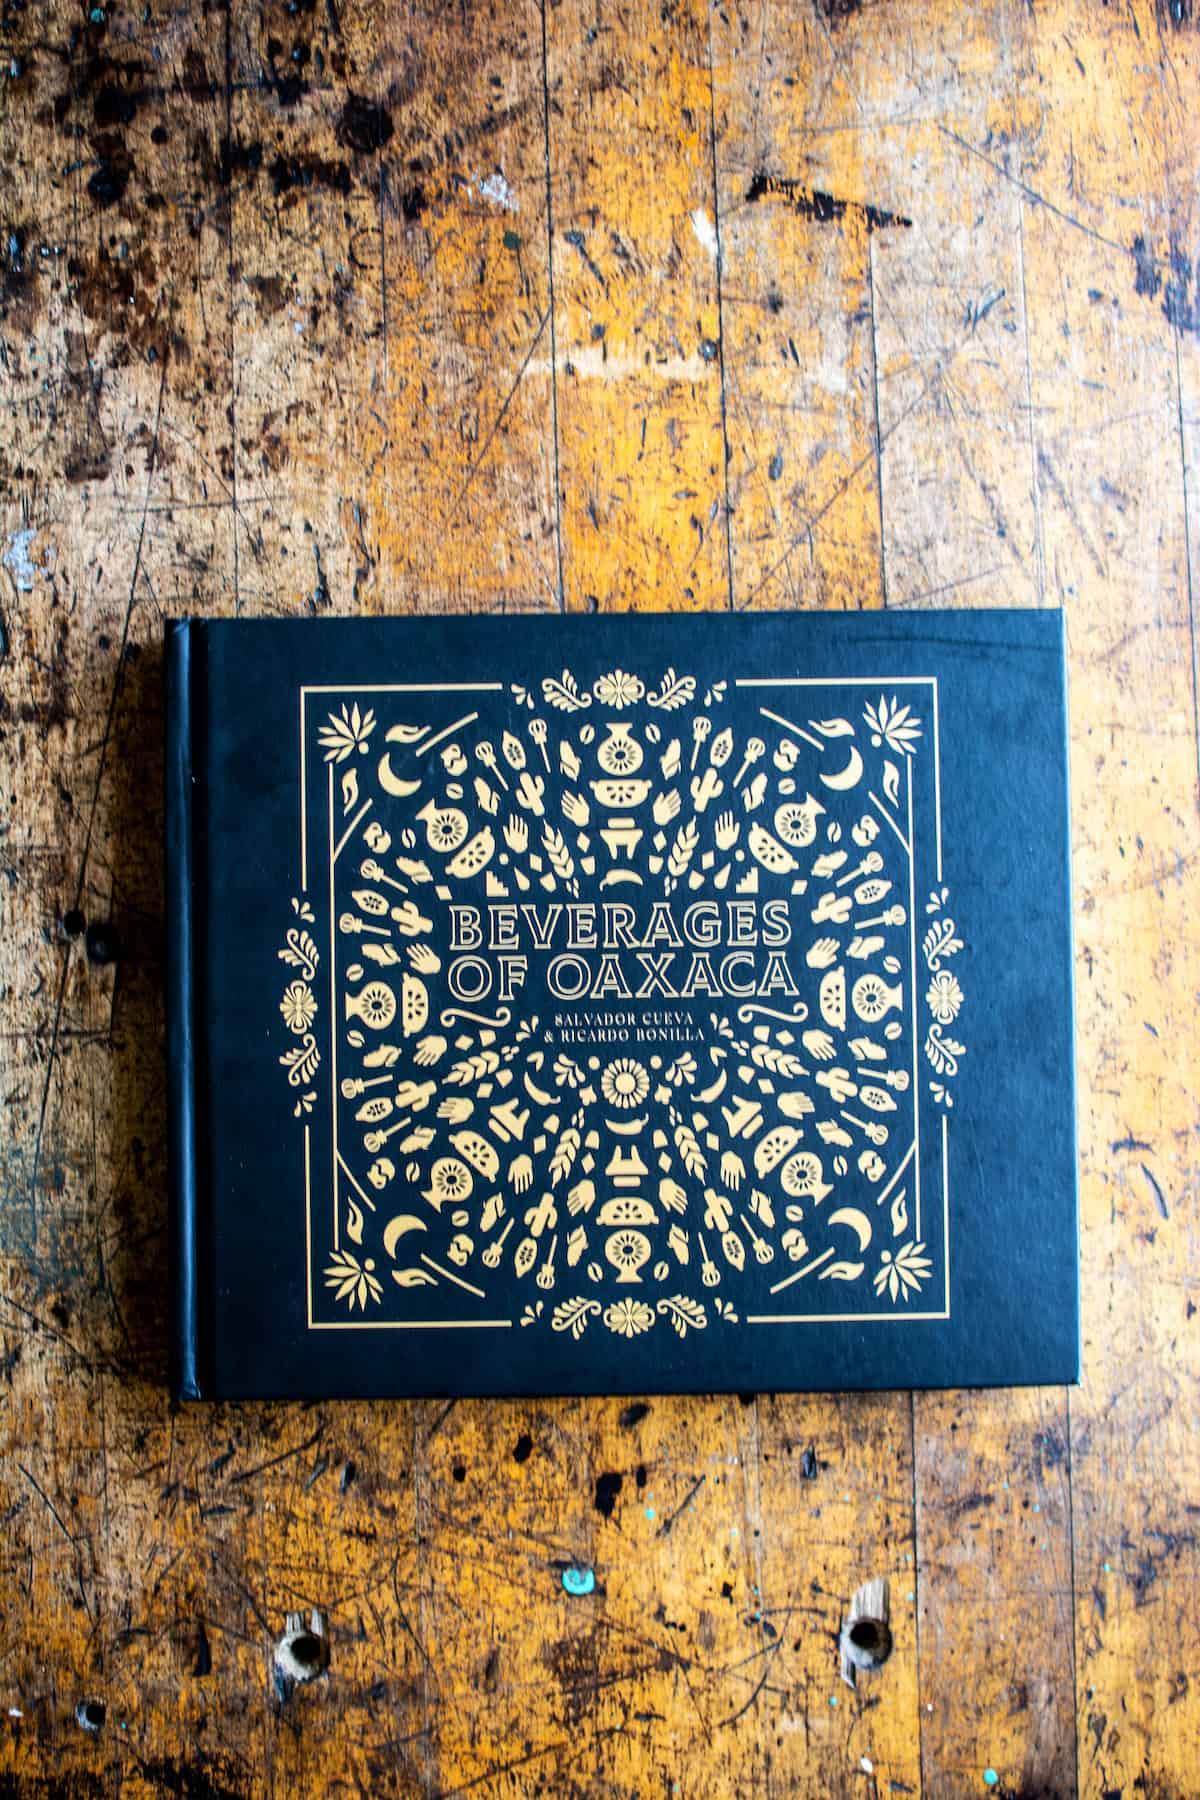 A black book with gold lettering and design sitting on a wood table. The title of the book is Beverages of Oaxaca by Salvador Cueva and Ricardo Bonilla.